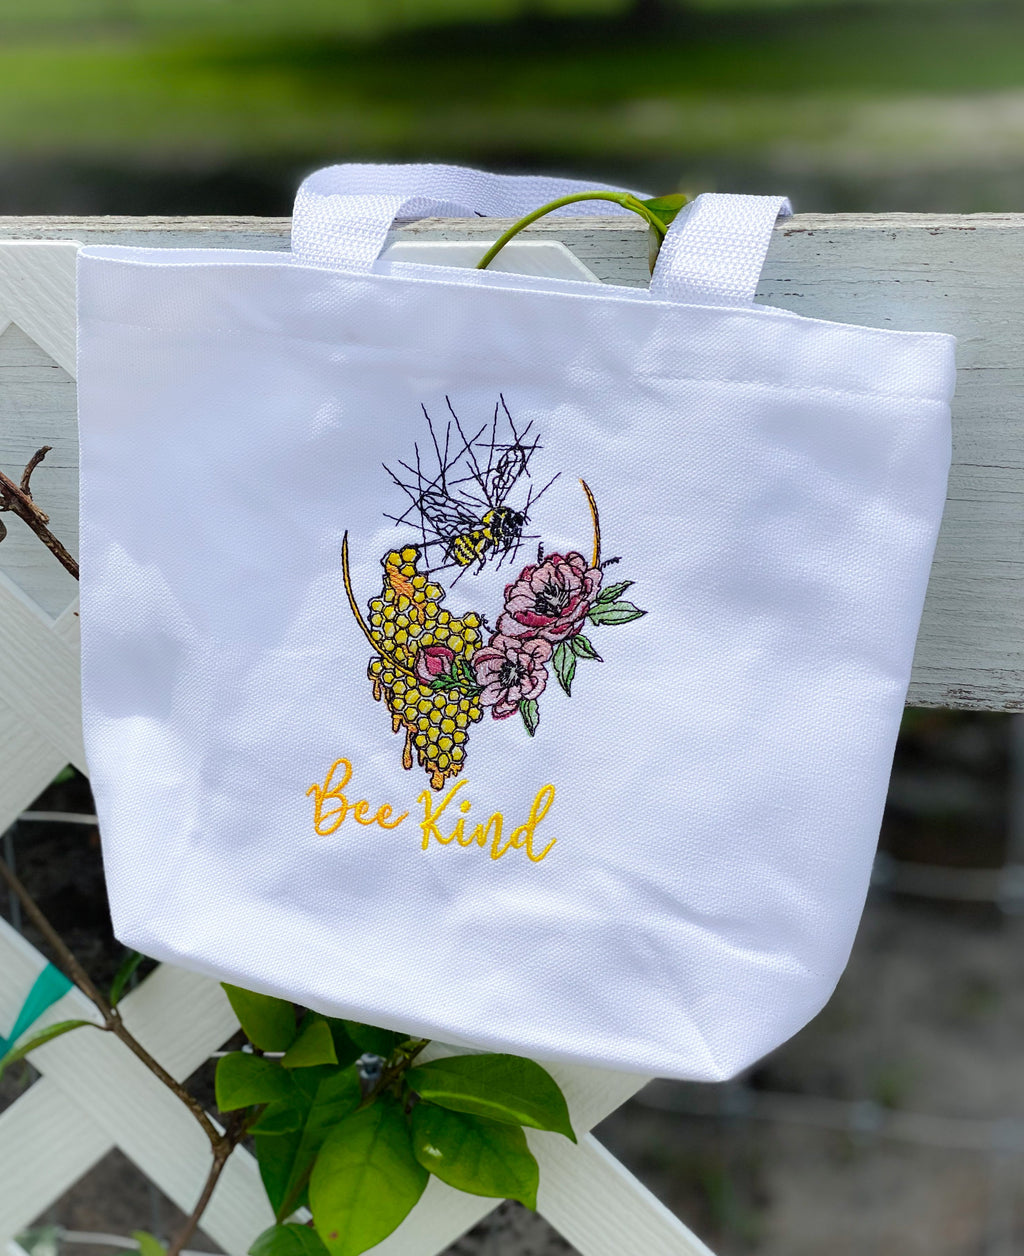 Bee Kind Honey Bee Wreath Sketch Embroidery Design - Sew What Embroidery Designs